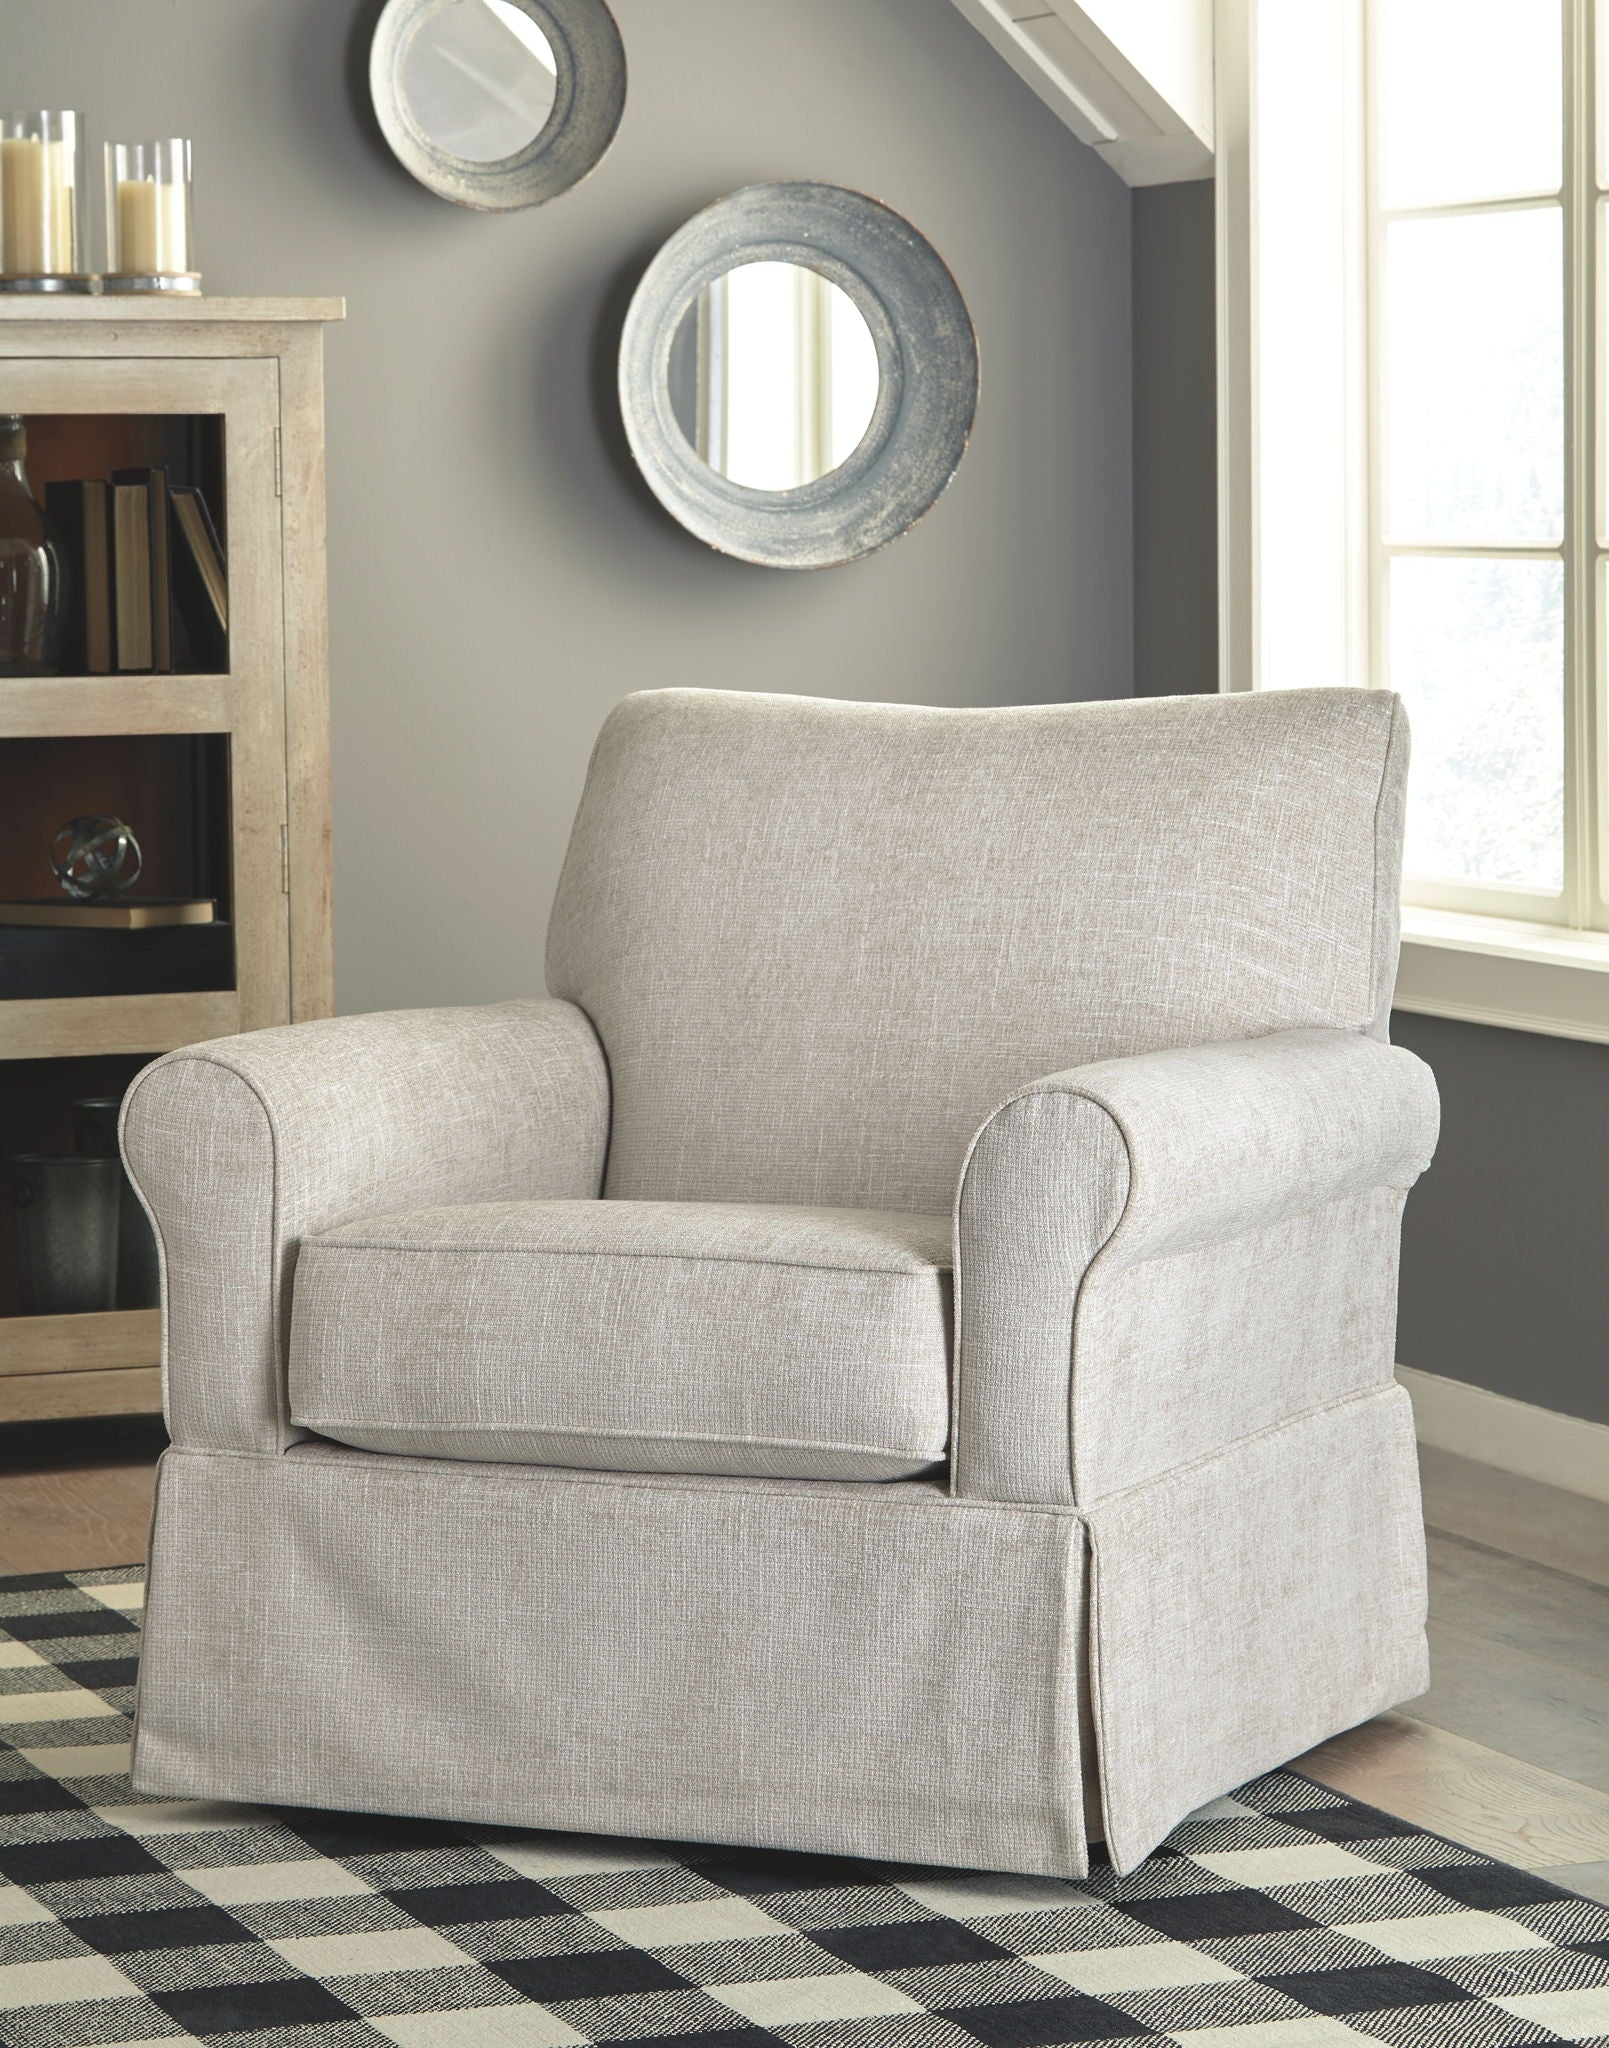 Searcy Accent Chair | Calgary's Furniture Store